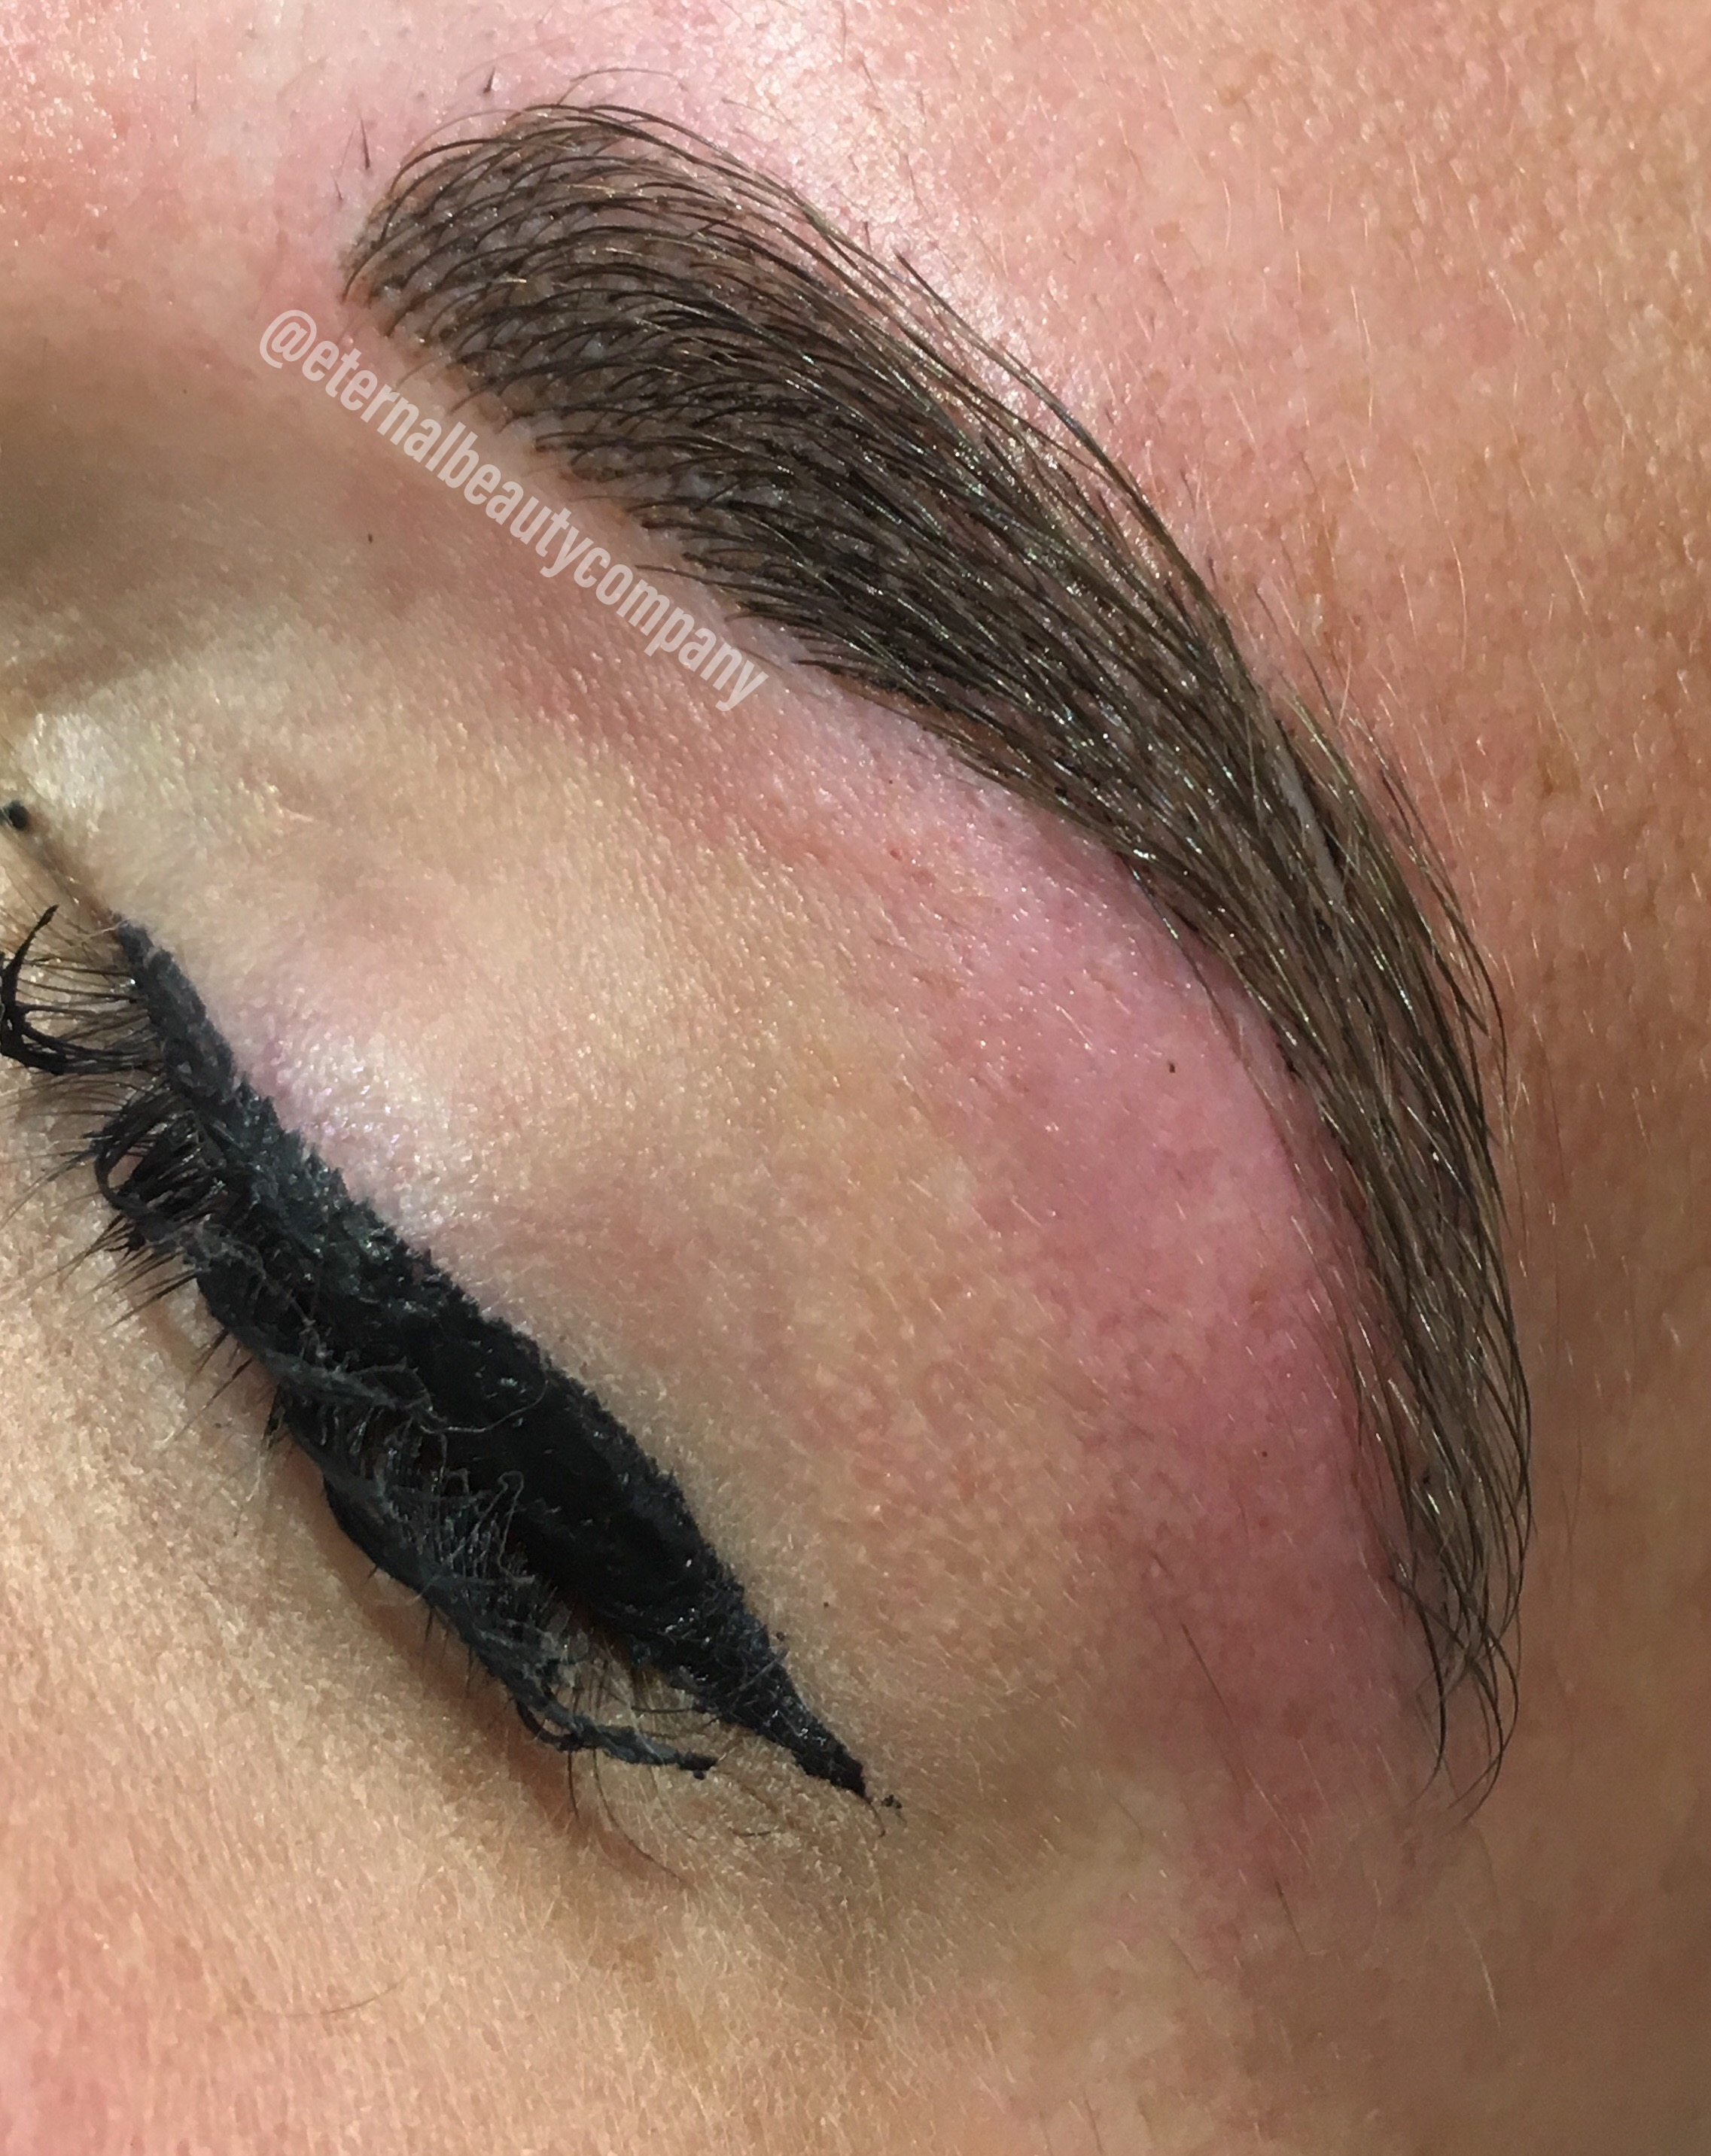 - Already enjoyed a permanent makeup treatment from Eternal Beauty Company in the past?Colour Boosting has got your back! Keeps your brows, lips and eyeliner looking fresh and crisp, perfect for that upcoming event, photoshoot or time away.NB- We will only colour boost previous clients due to shade matching technology used in our Indelibeliner or Gloss and Go pigments. If you need a boost but have been treated elsewhere beforehand you will be treated as a new client.ANY Colour Boost after 24 months from the first treatment will need to be treated as a new treatment also due to the possible migration of previous work- contact us to discuss your personalised treatment plan.